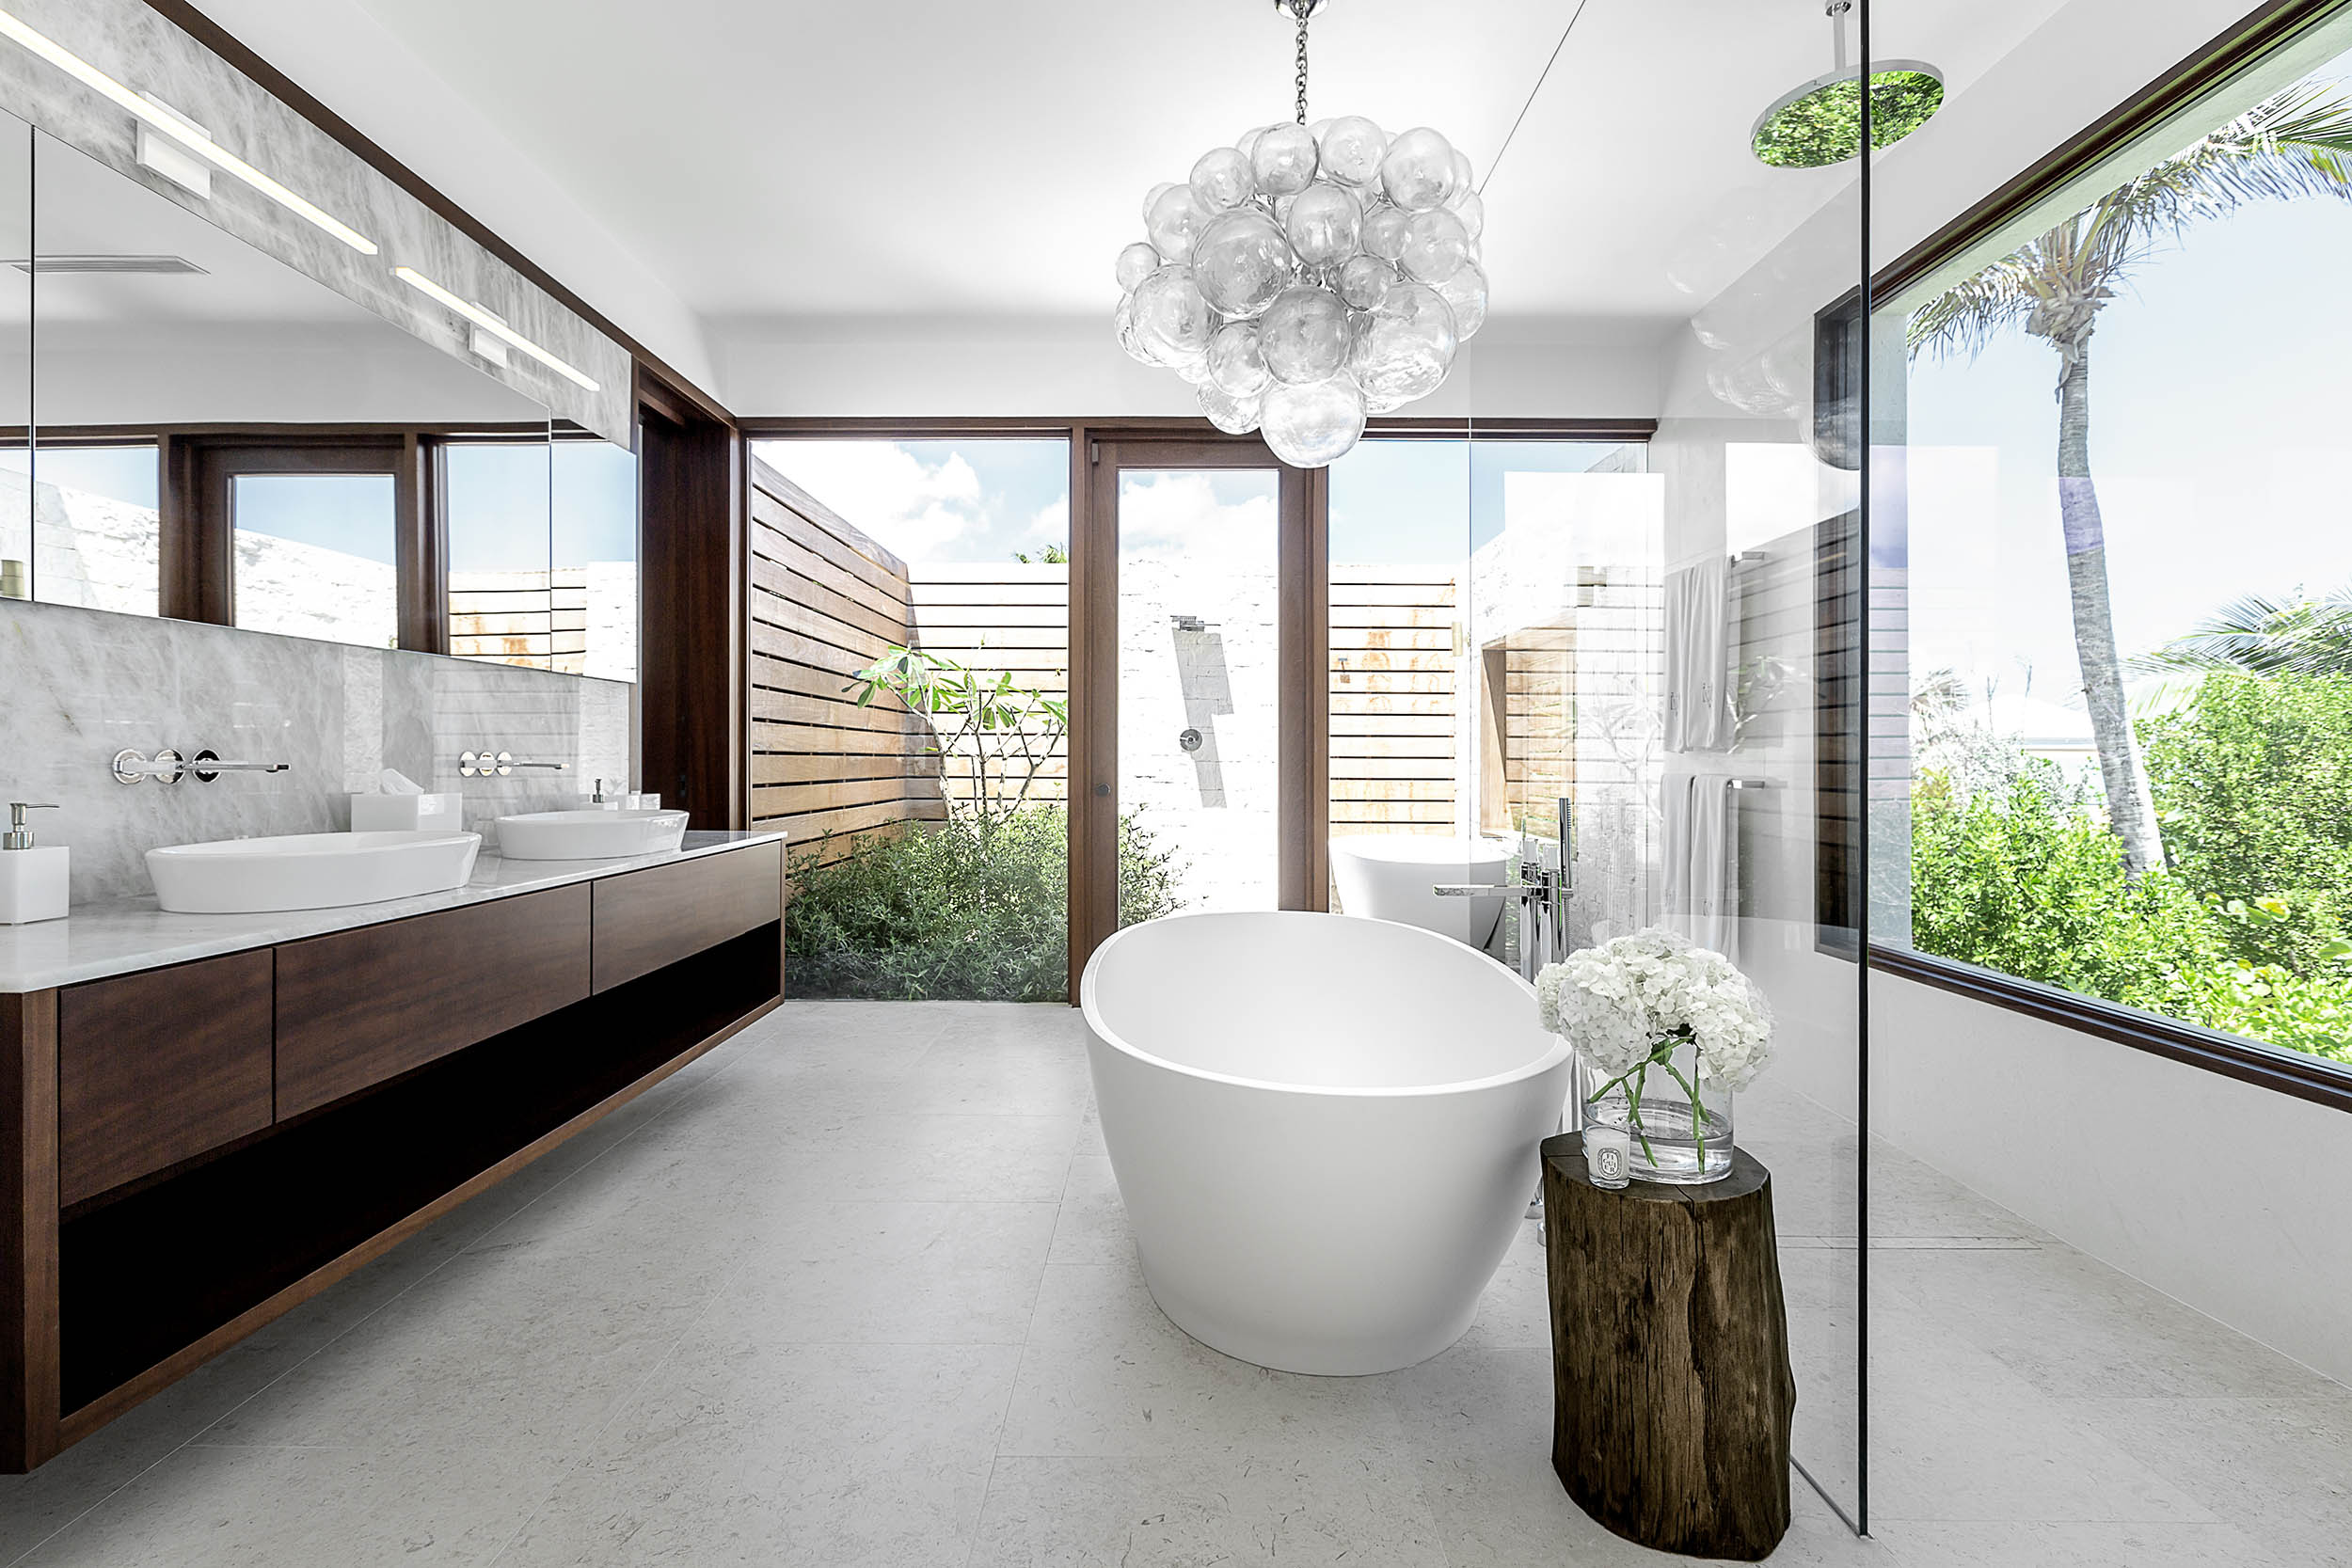 La Dolce Vita - view of one of the bathrooms with outdoor shower and bath tub